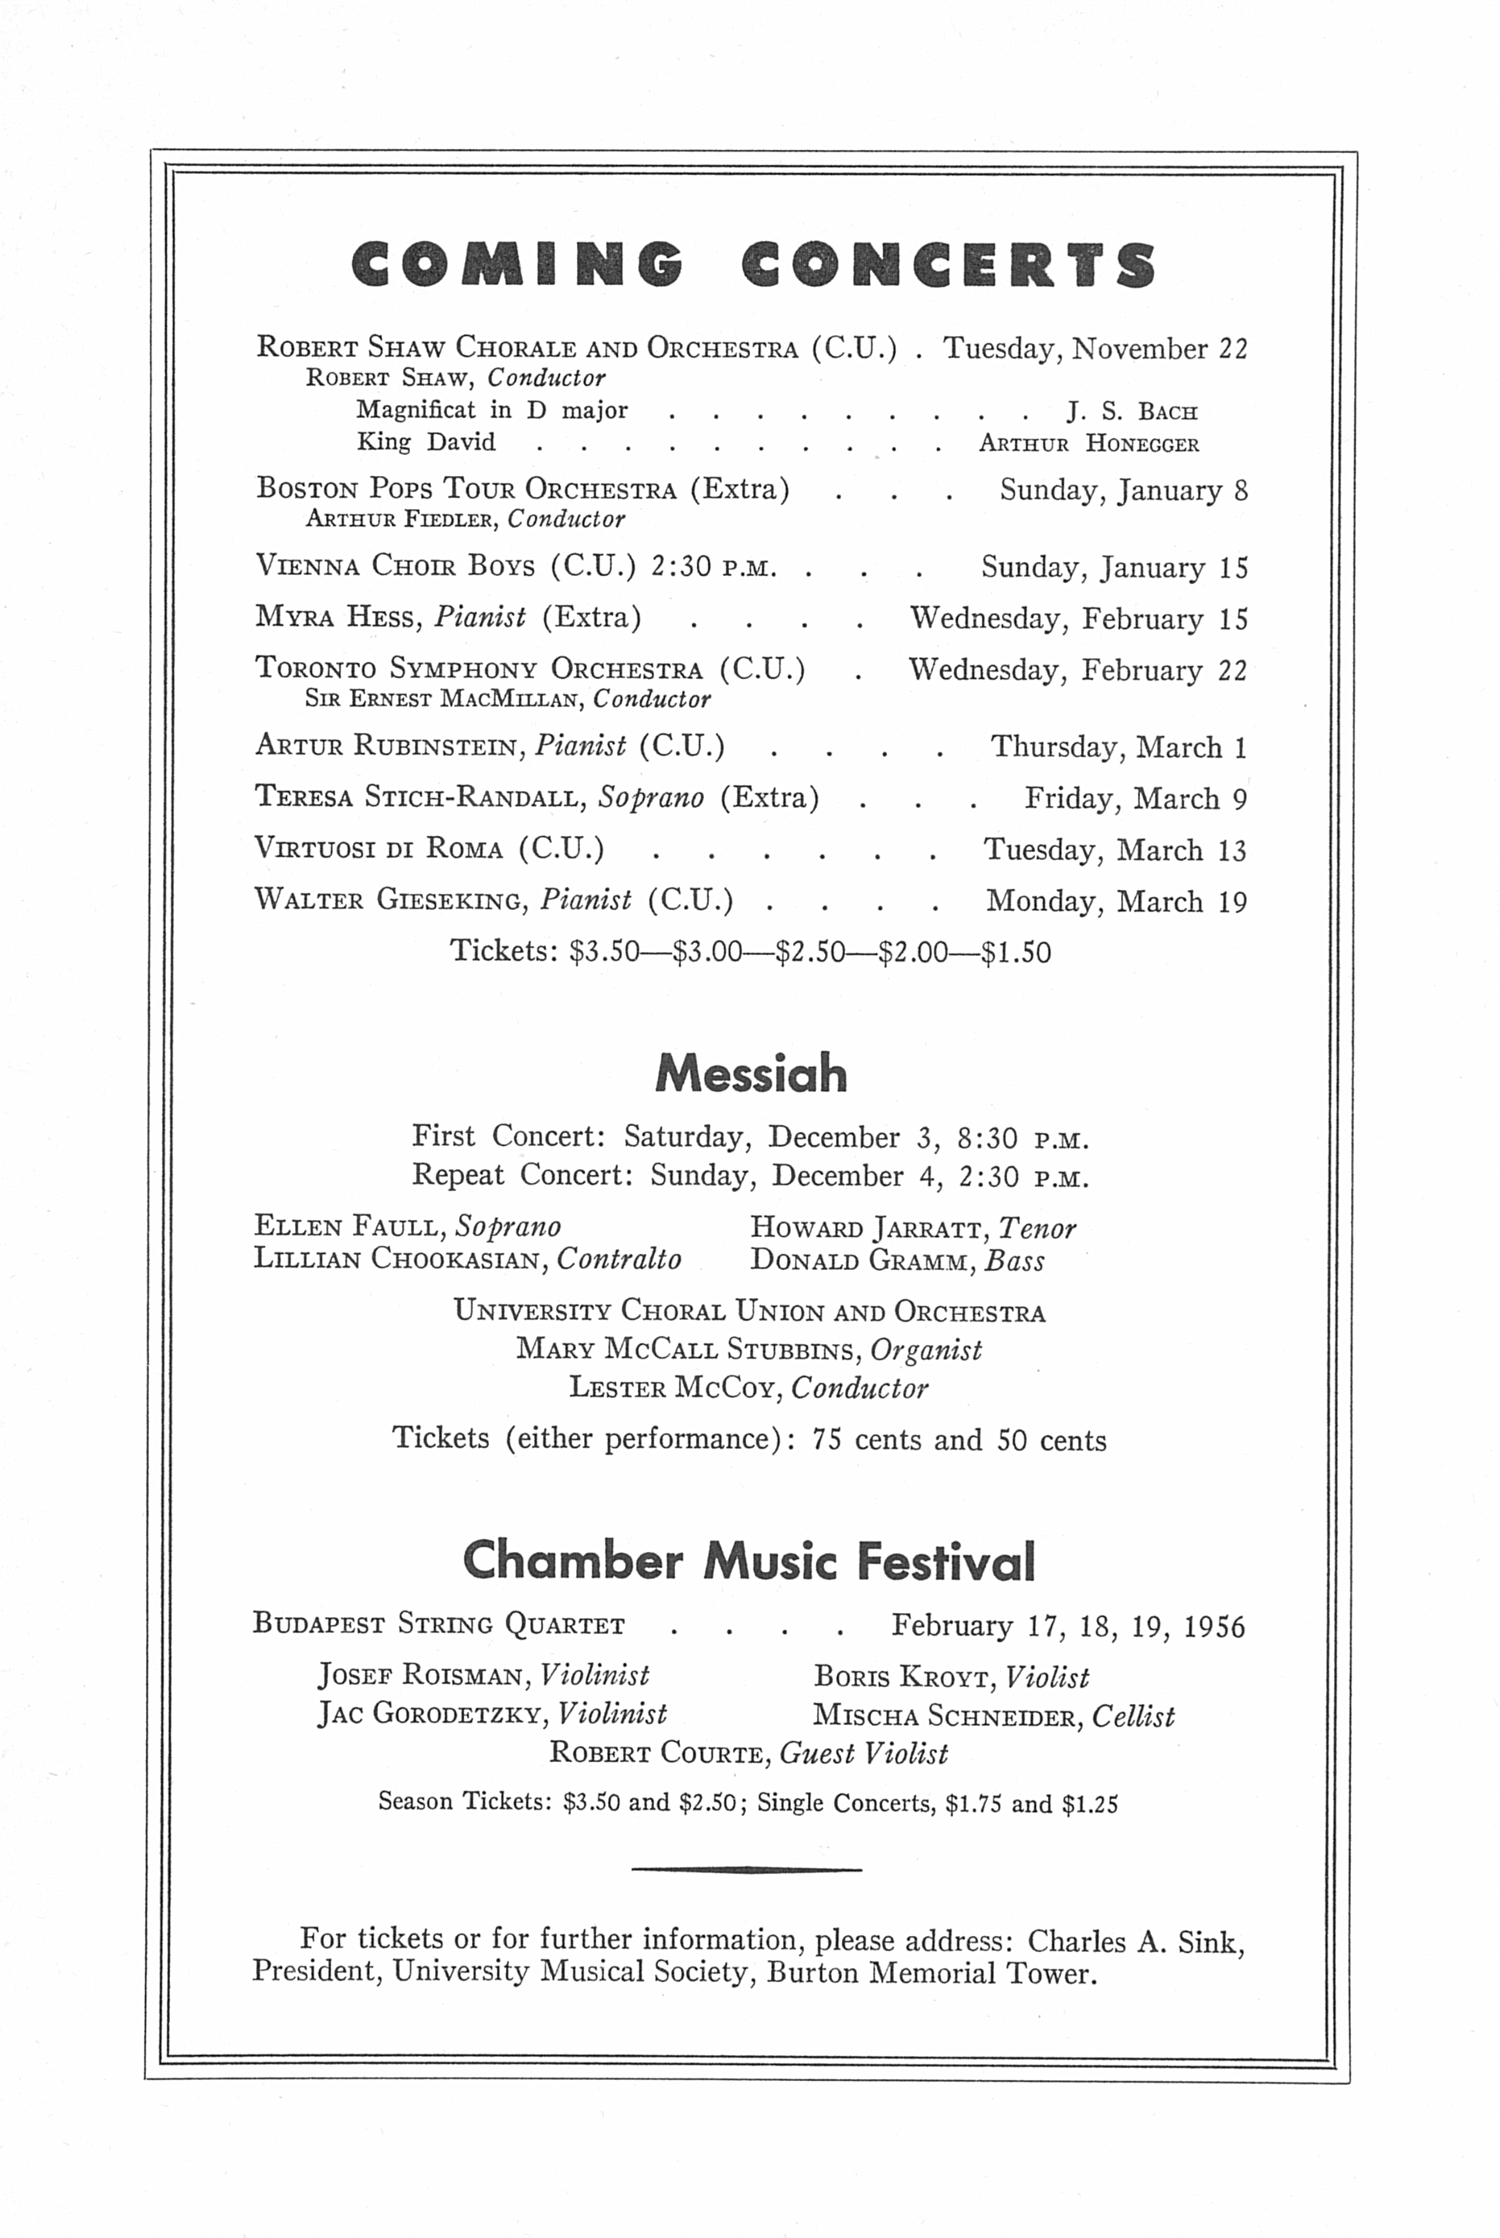 UMS Concert Program, November 14, 1955: Seventy-seventh Annual Choral Union Concert Series -- Nathan Milstein image